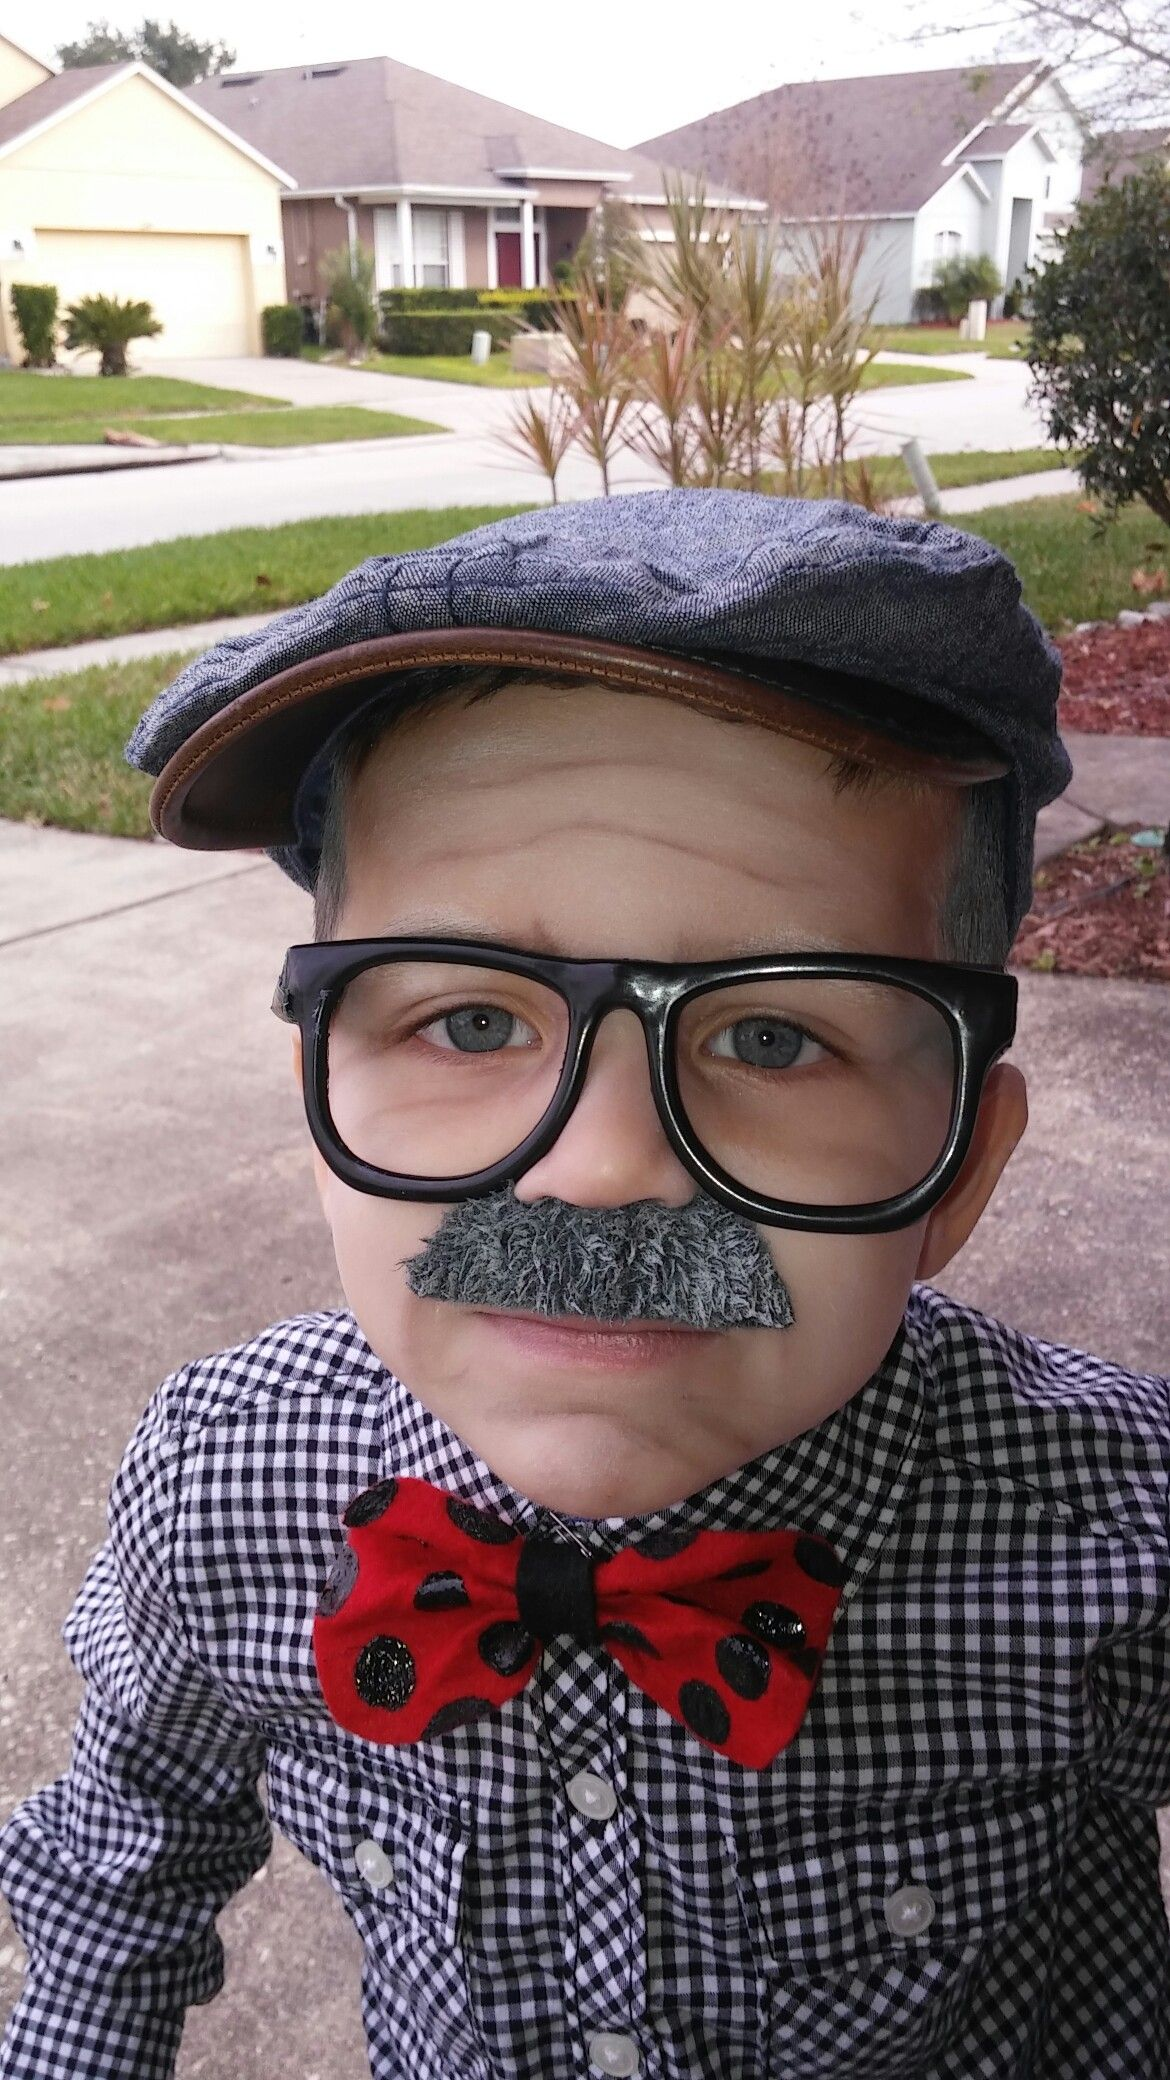 100th day of school/old man costume for kids. Mustache